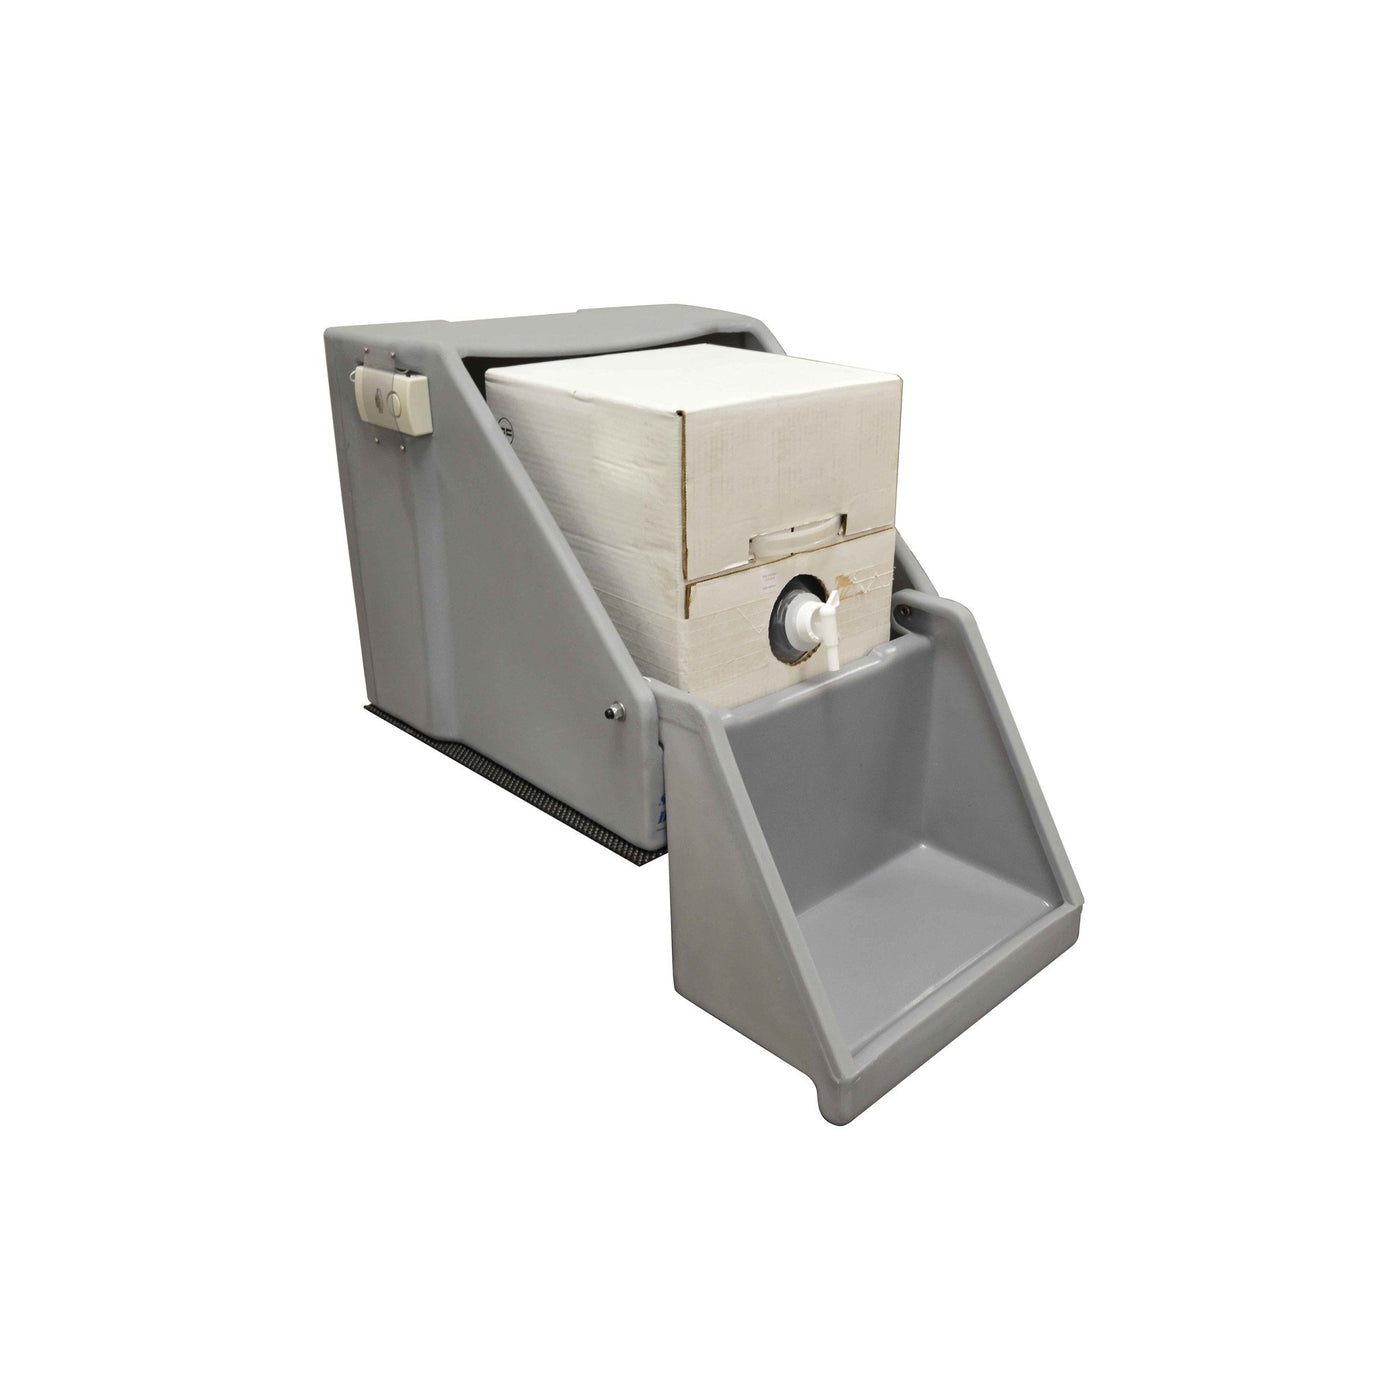 Formalin Cube Holder Econo-Pathology Grossing Stations-Mortech Manufacturing Company Inc. Quality Stainless Steel Autopsy, Morgue, Funeral Home, Necropsy, Veterinary / Anatomy, Dissection Equipment and Accessories